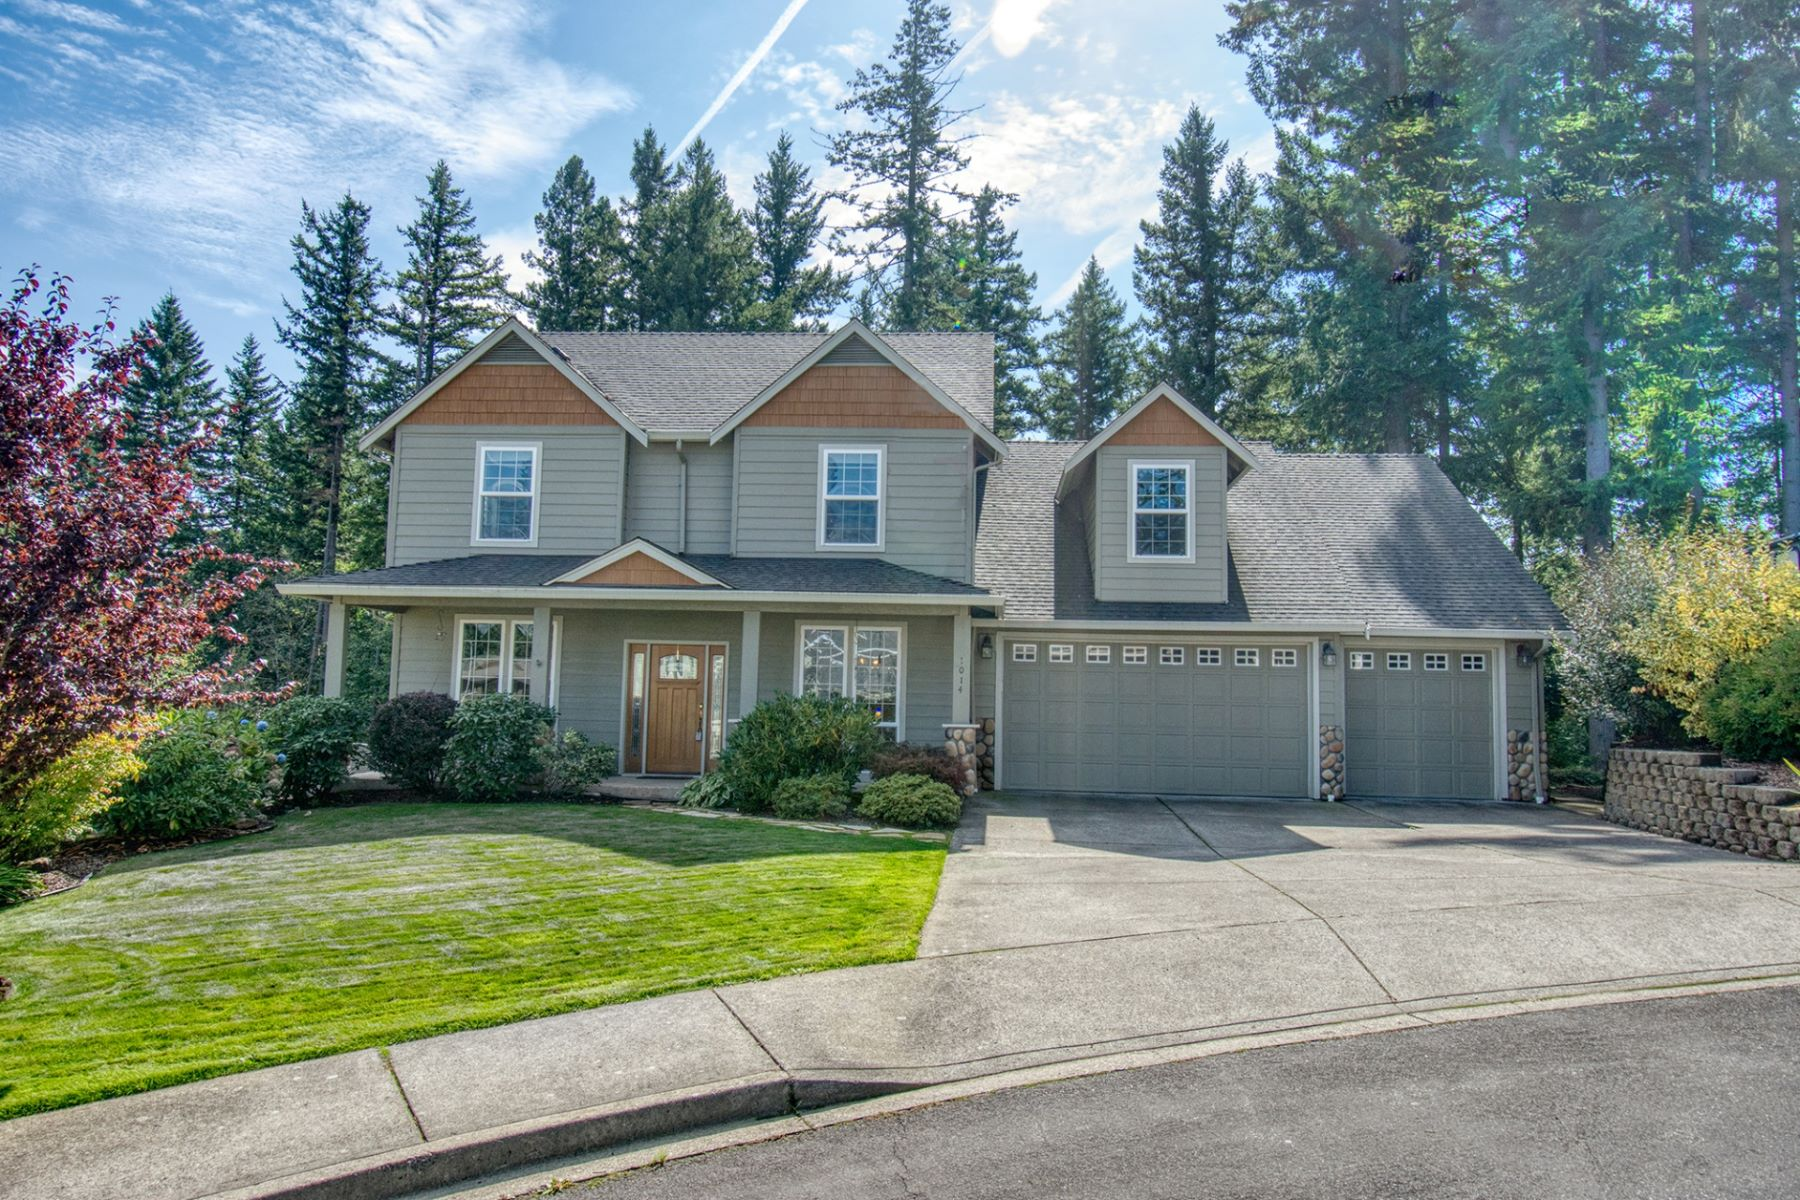 Single Family Homes for Sale at Light and Bright in Camas 1014 NW 20th Ave Camas, Washington 98607 United States